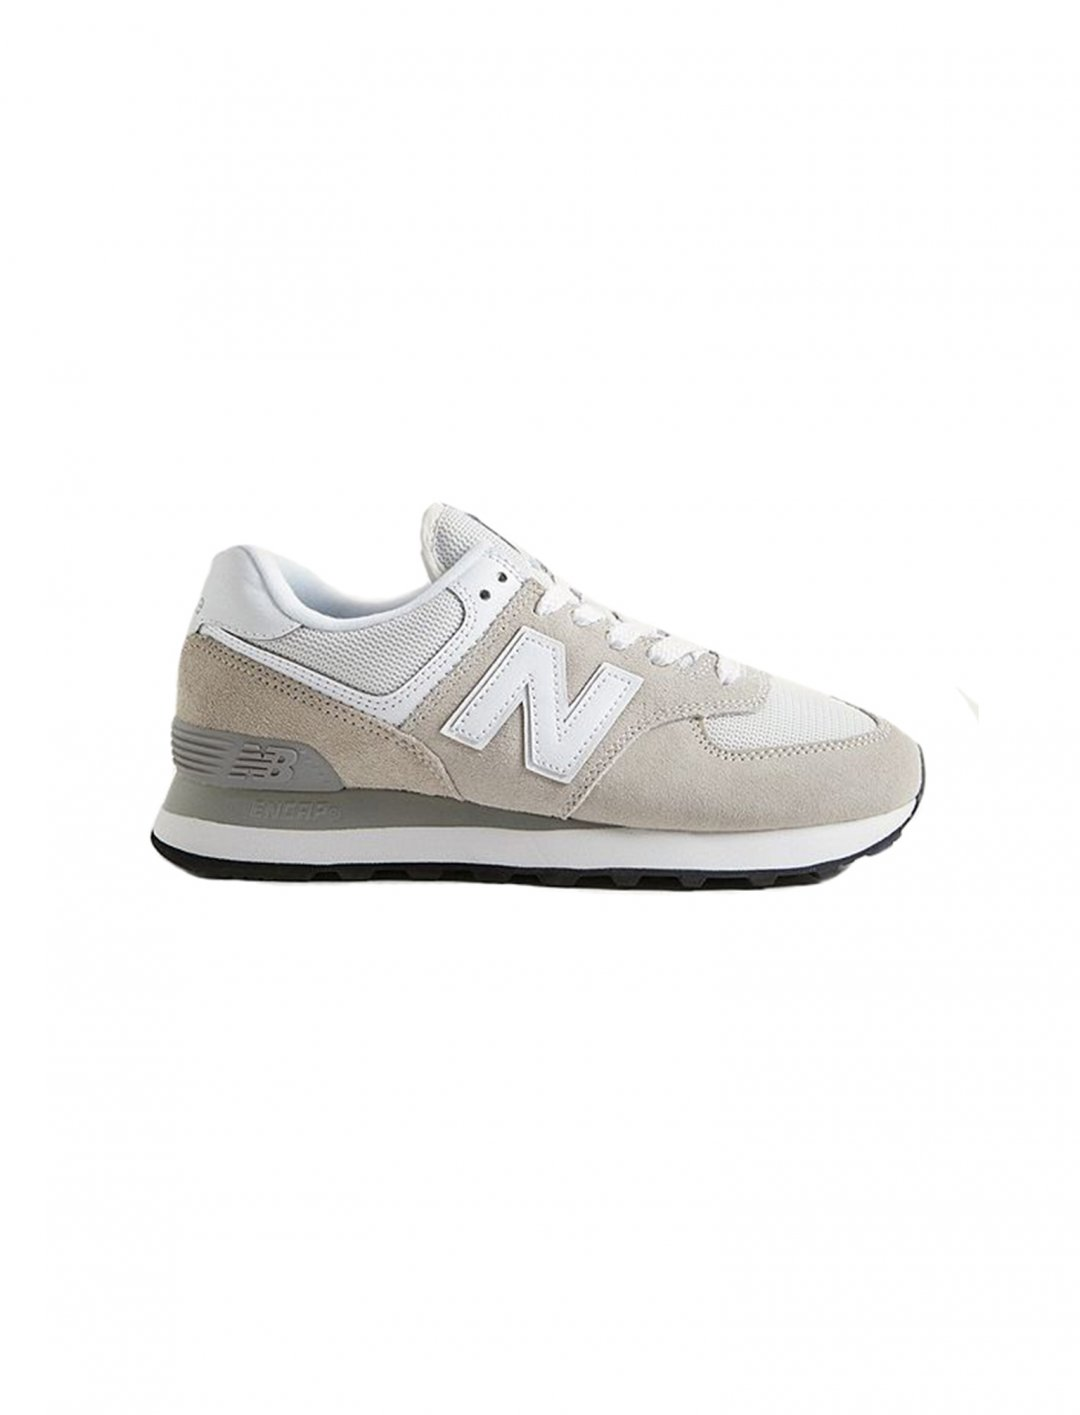 "New Balance Off-White Trainers {""id"":12,""product_section_id"":1,""name"":""Shoes"",""order"":12} New Balance"